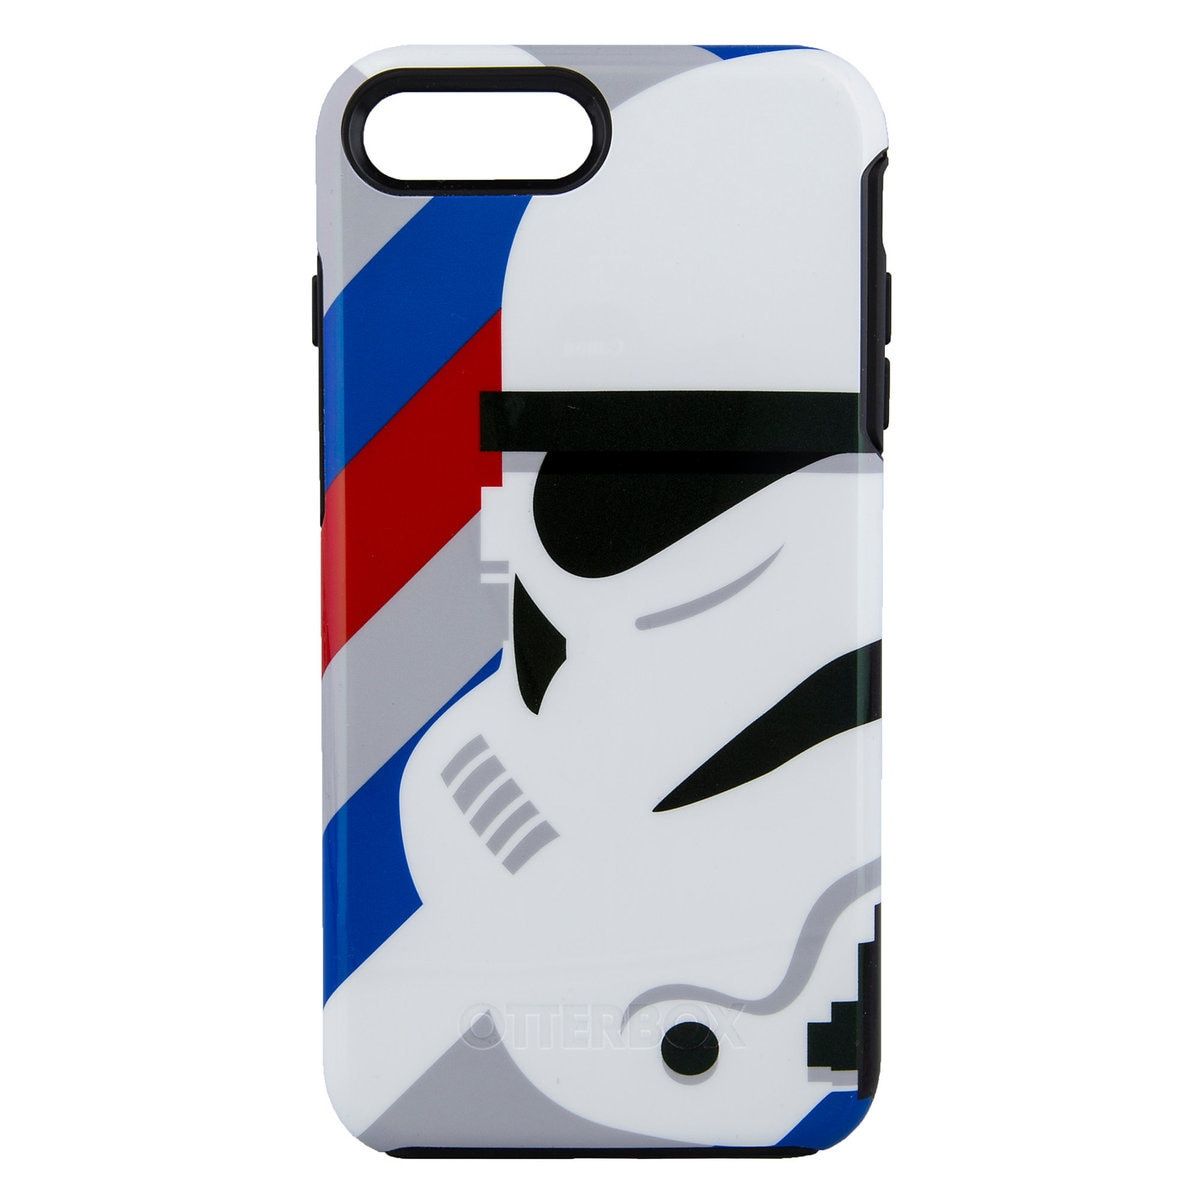 low priced fe704 73724 Stormtrooper OtterBox iPhone 8/7 Plus Case - Star Wars